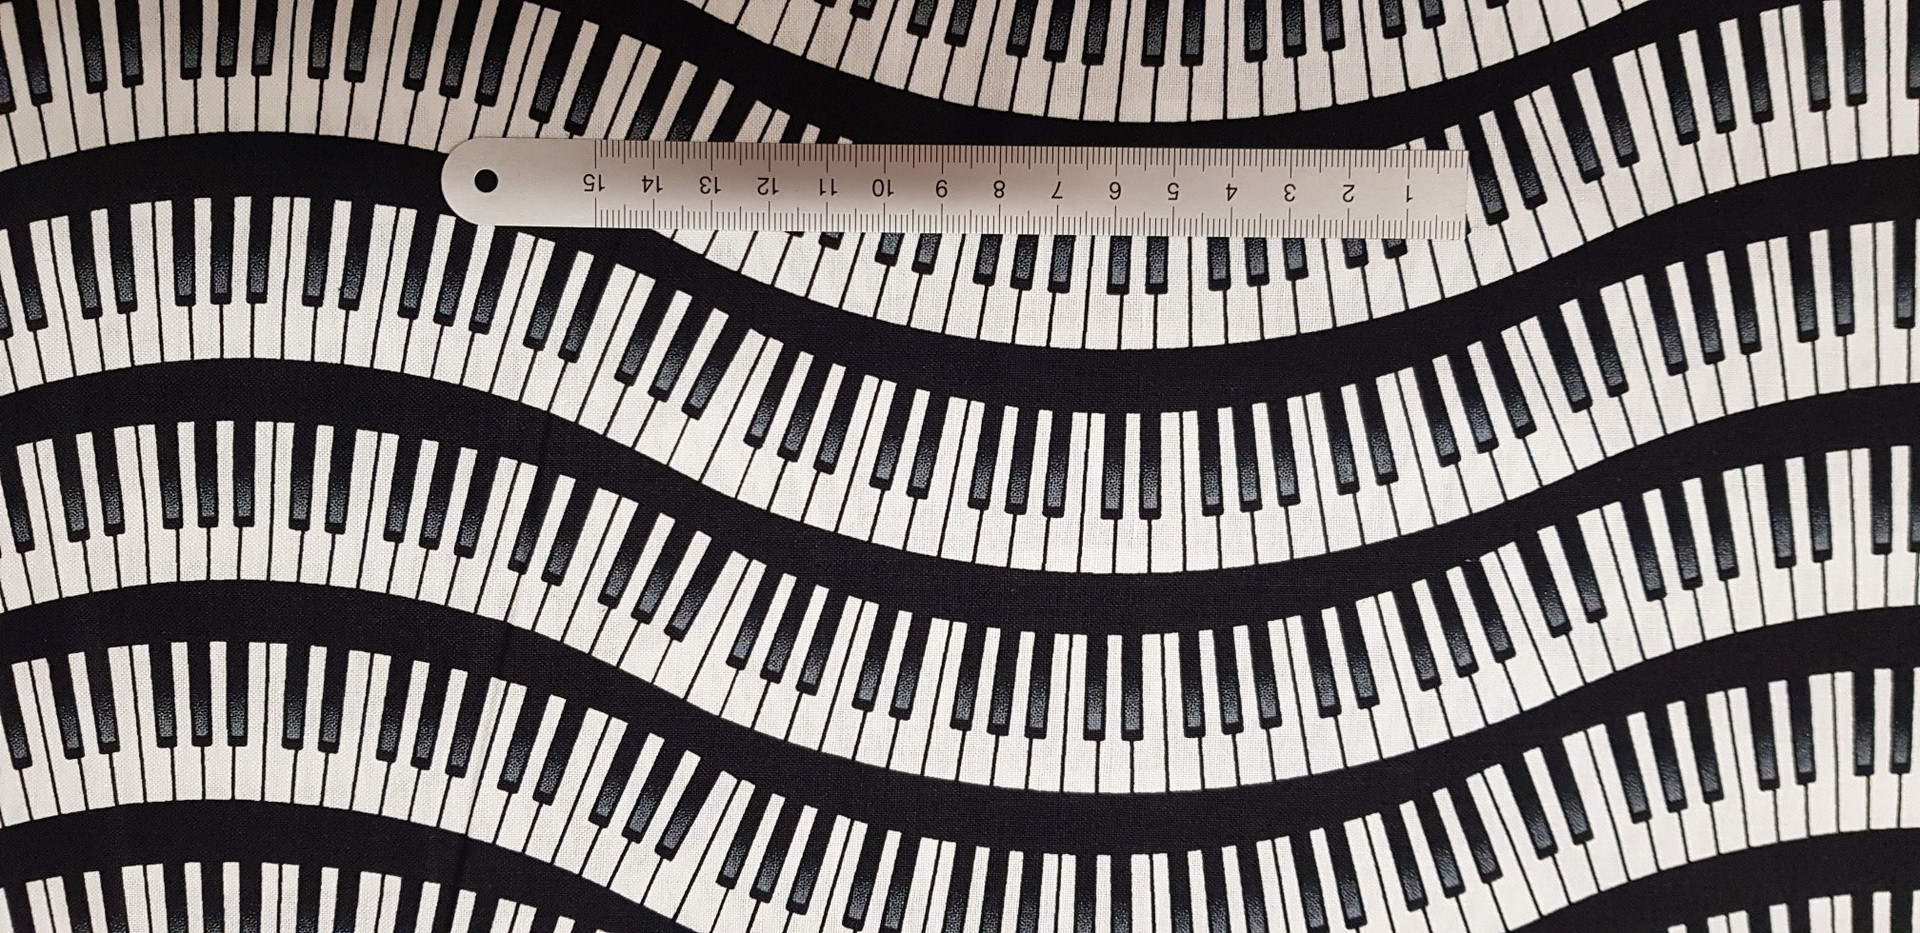 119. Psychedelic Pianist